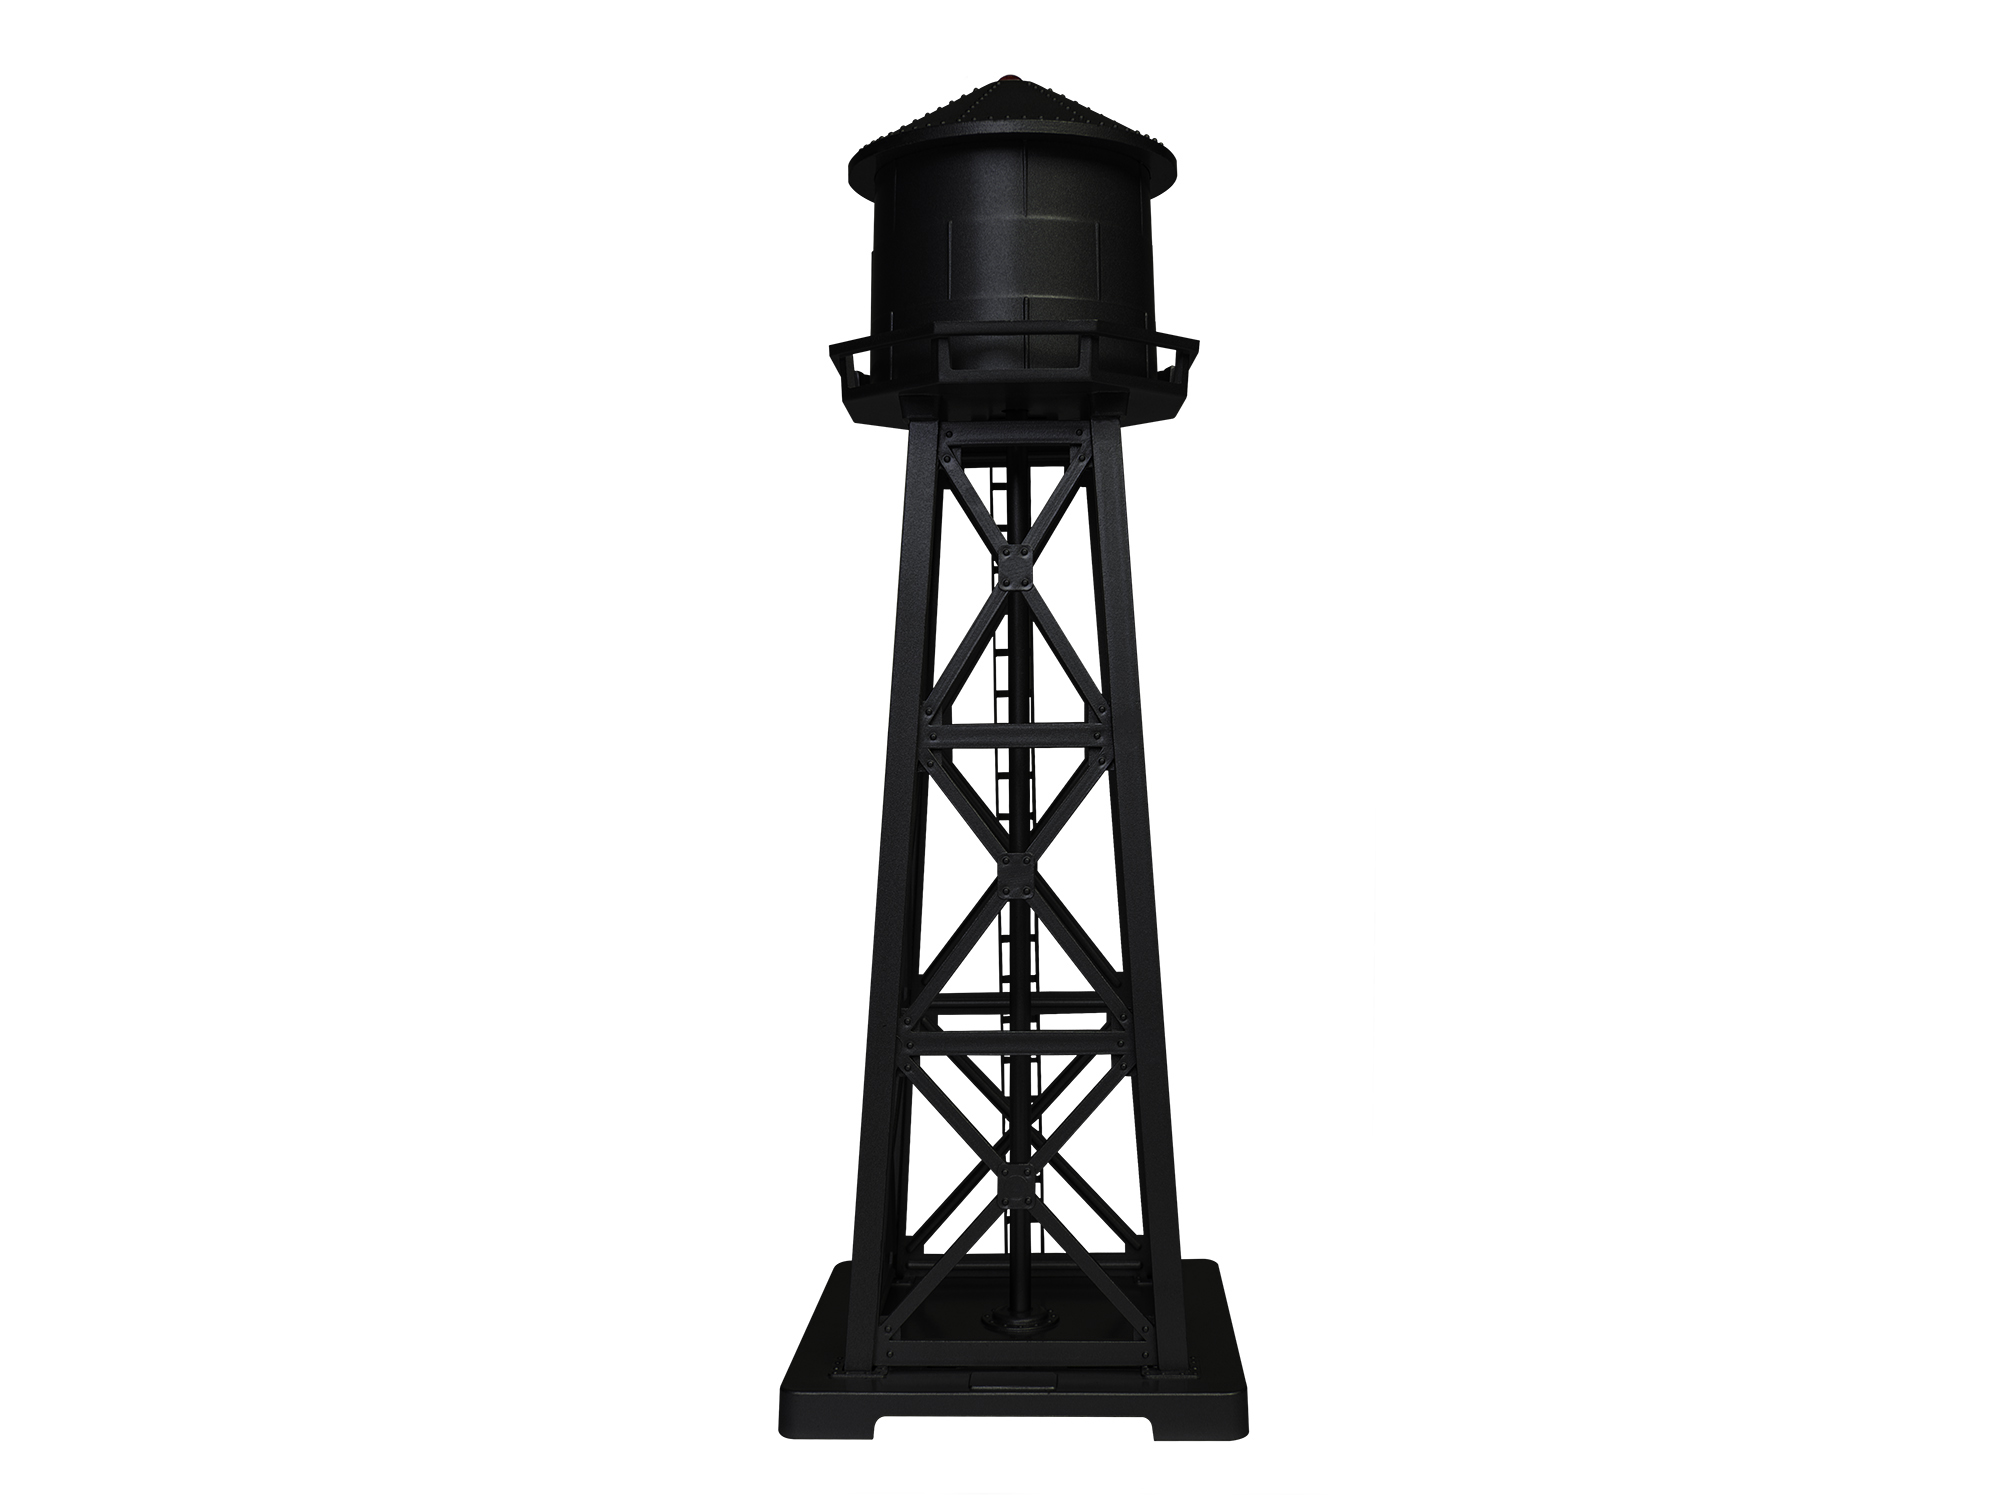 Lionel 1956130 HO Lighted Water Tower Kit Black